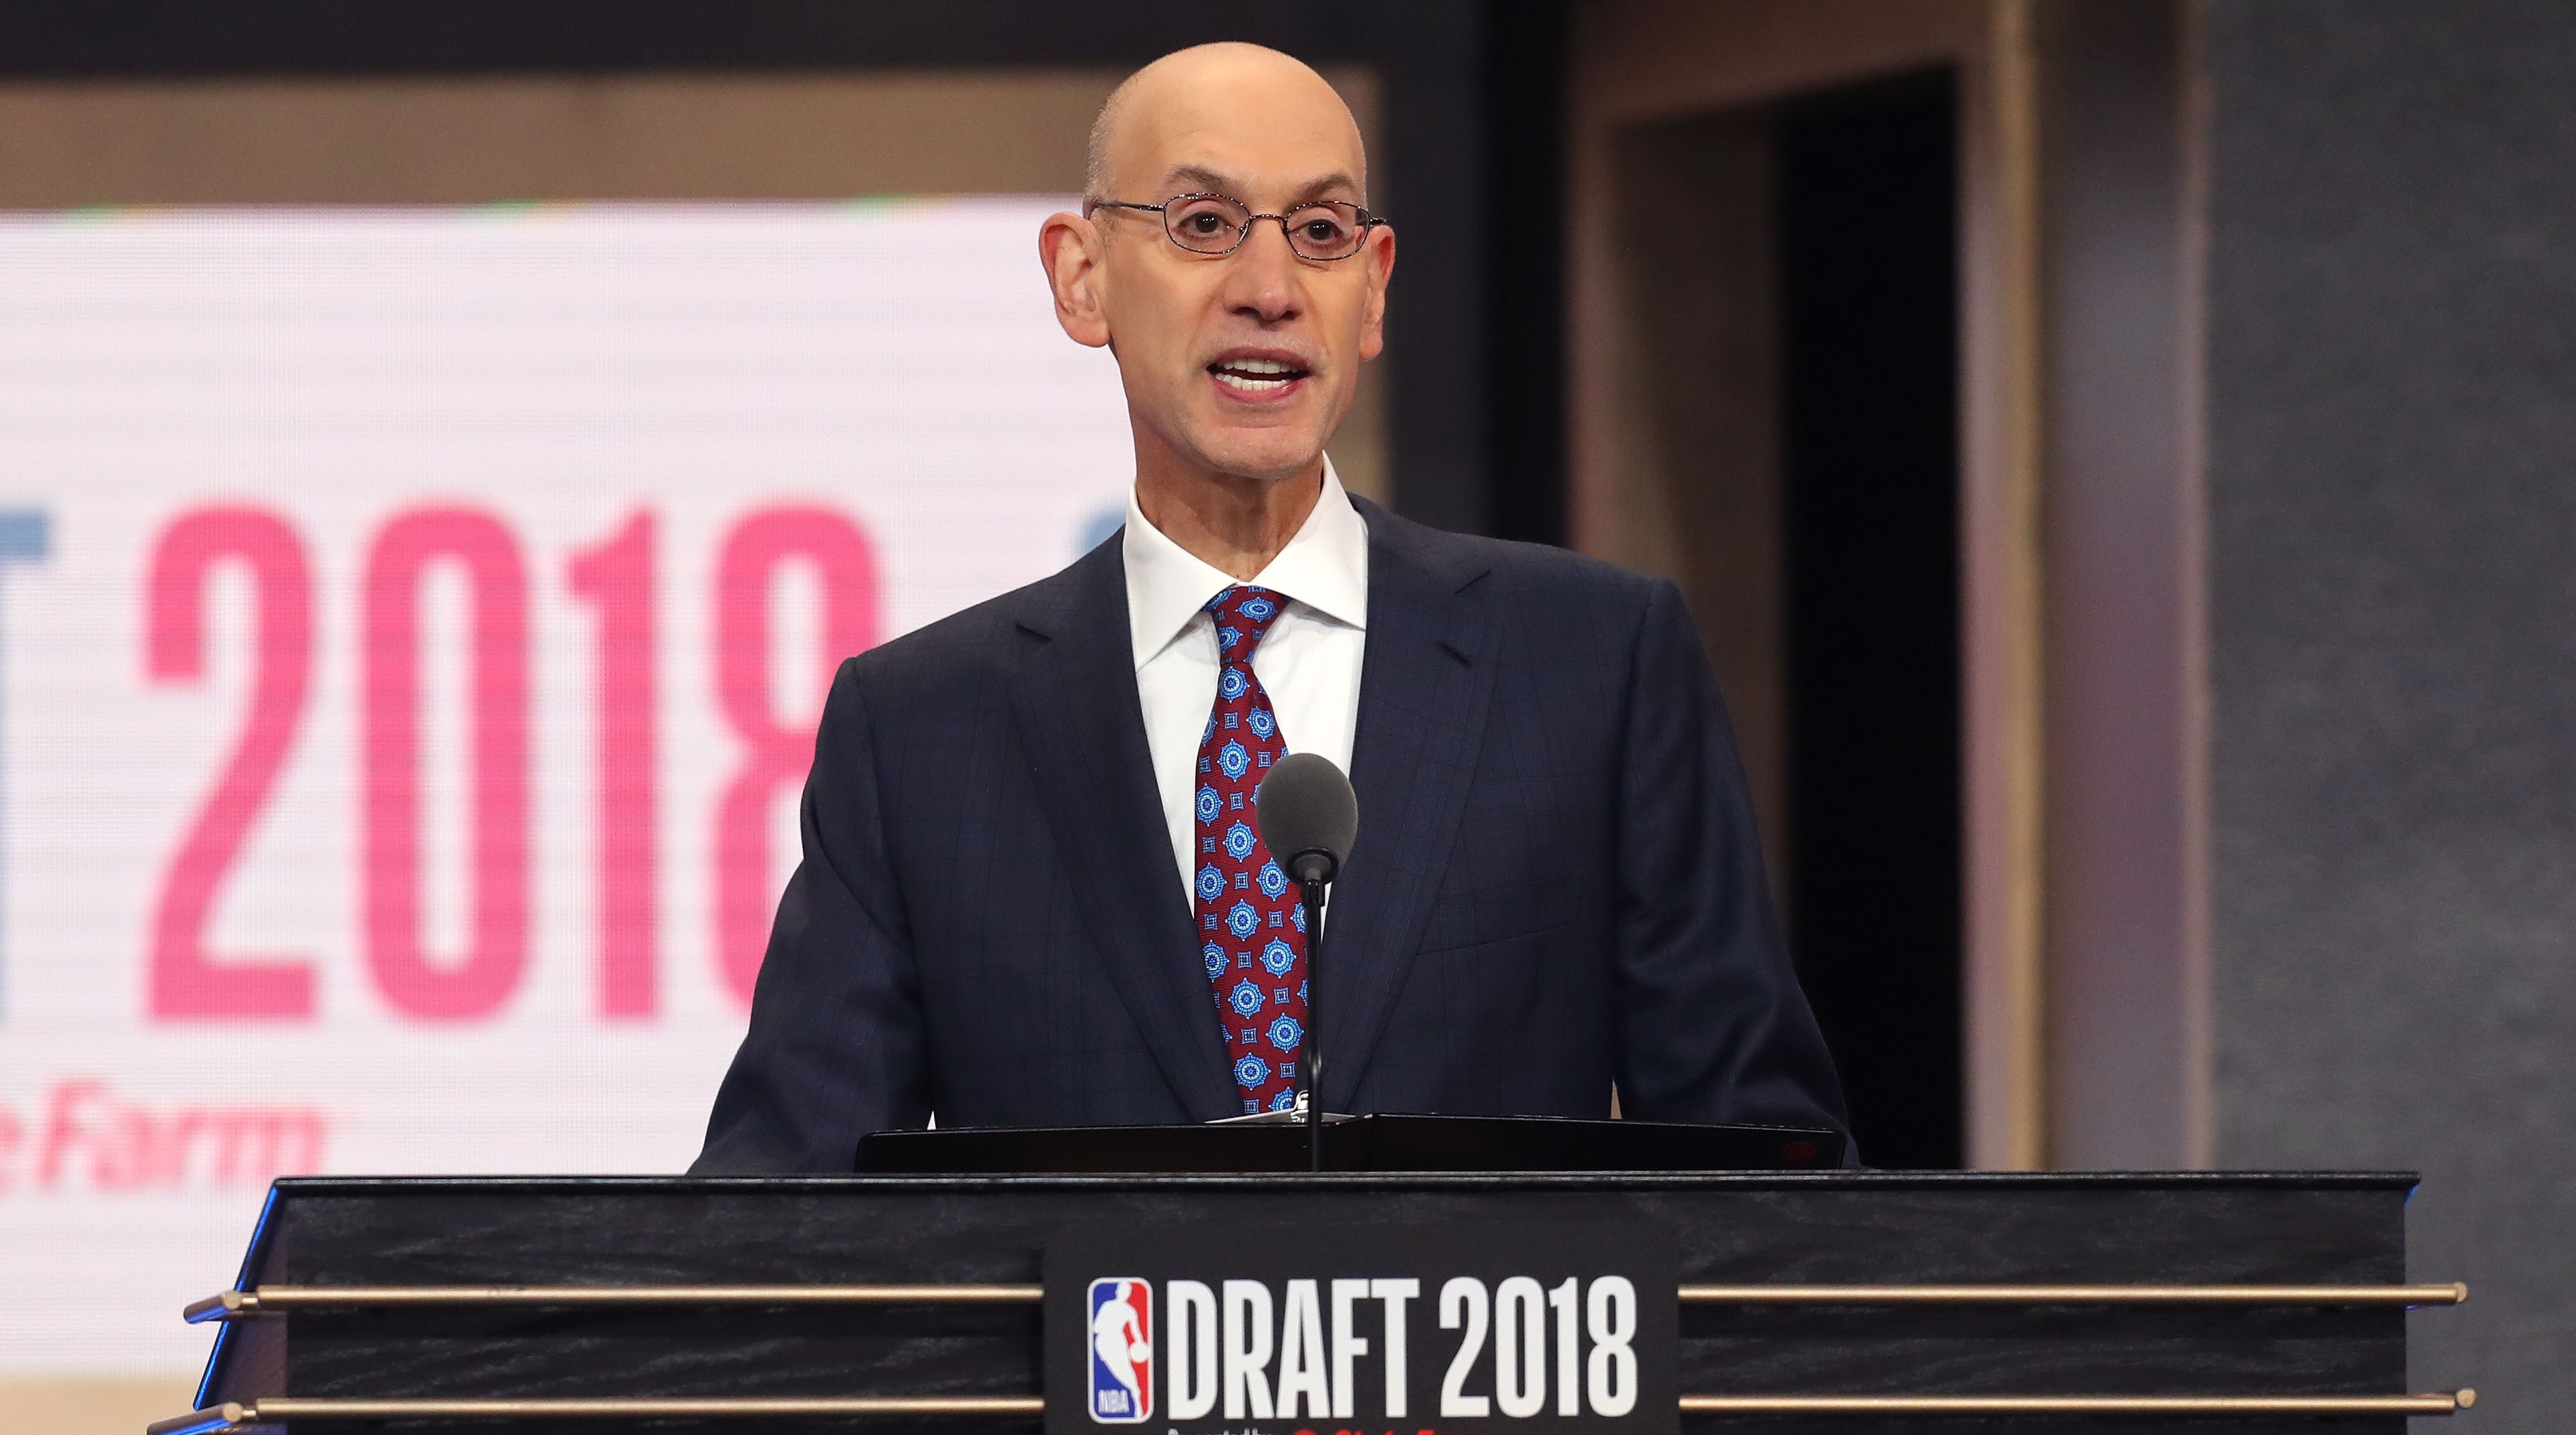 NBA, USA Basketball 'blindsided' by new NCAA rules, report says